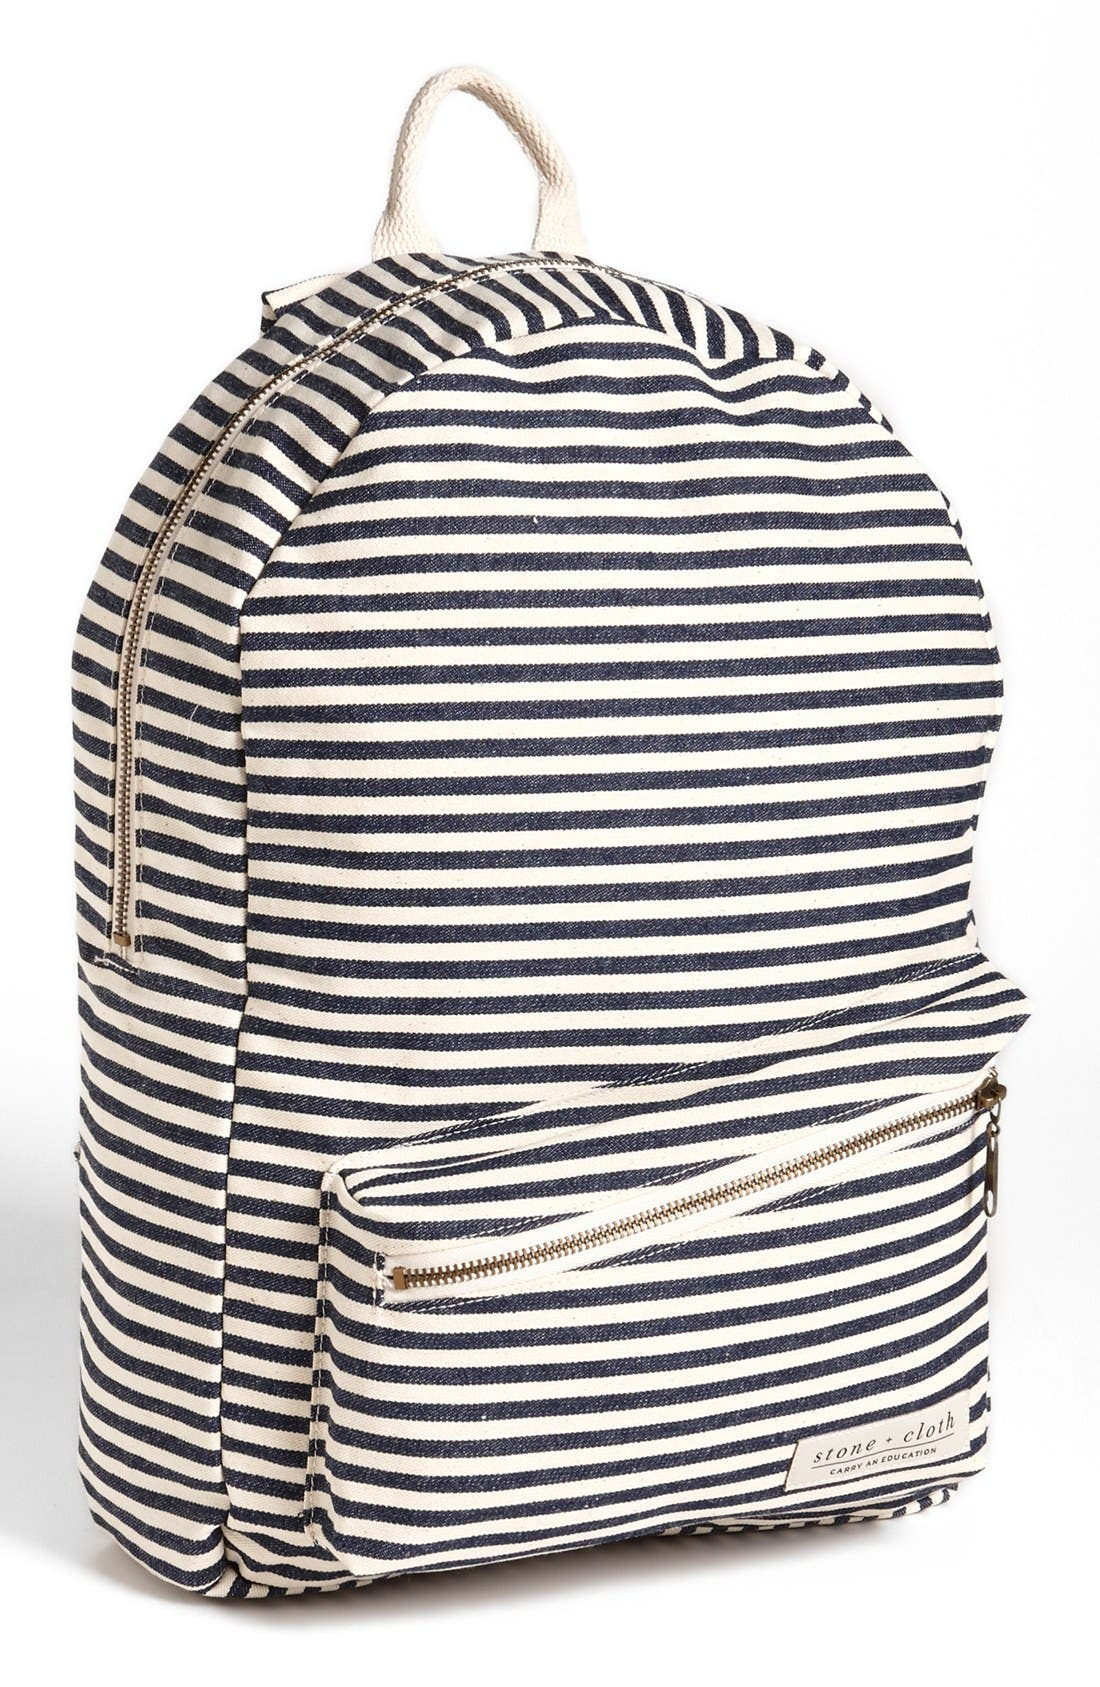 Main Image - Stone + Cloth 'Lucas' Backpack